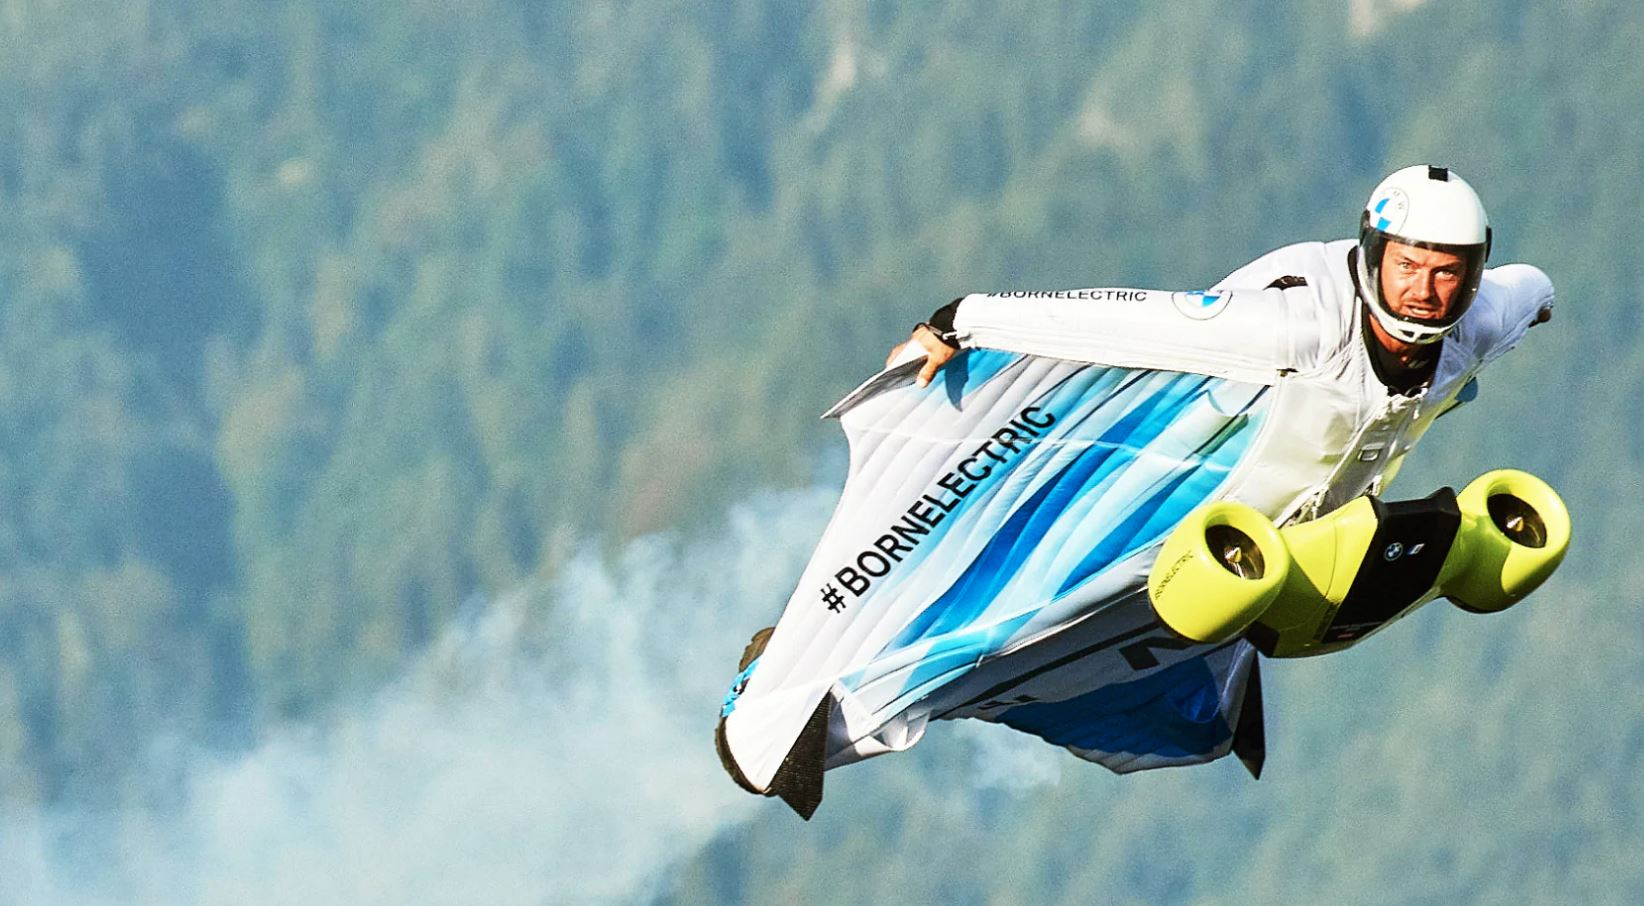 heres-bmws-all-electric-wingsuit-taking-its-maiden-flight-151179_1